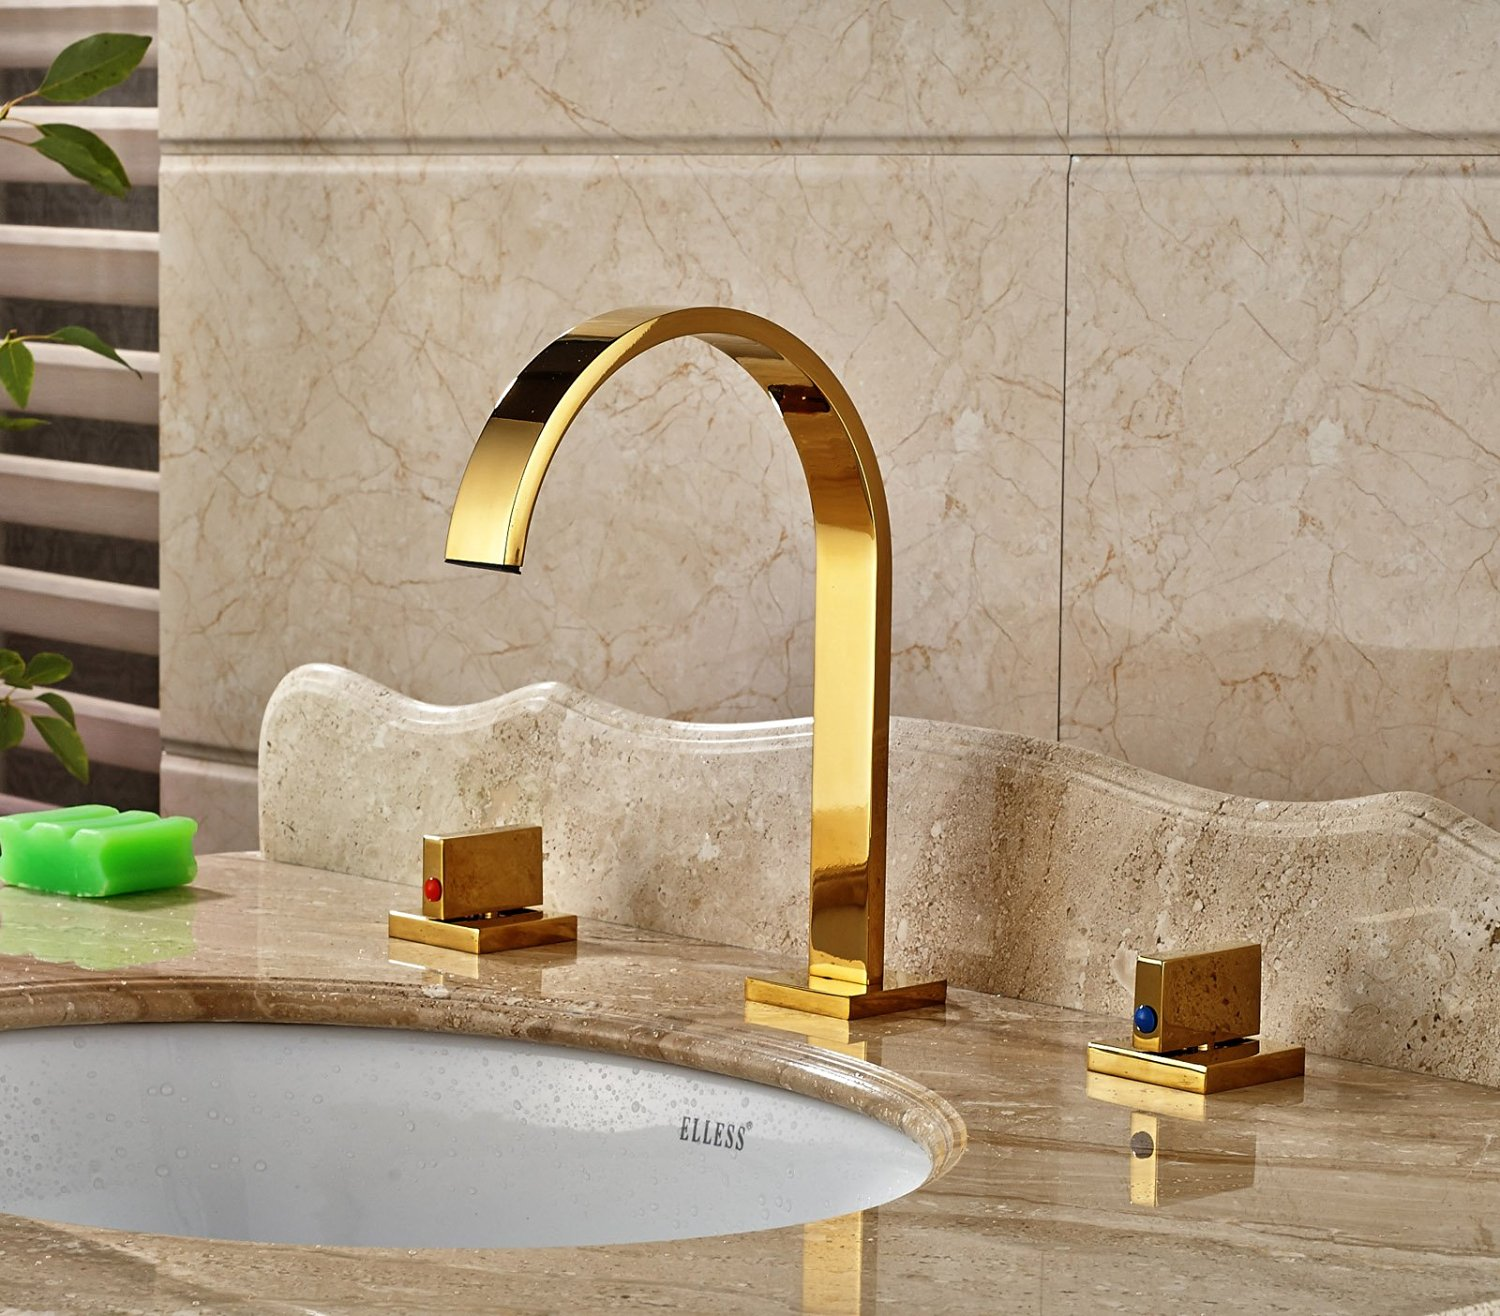 Lovely Tub Paint Small Bathtub Repair Contractor Shaped How To Paint A Bath Tub Painting The Bathtub Youthful Miracle Method Refinishing YellowReglazing Shower Gold Finish Deck Mounted Sink Faucet